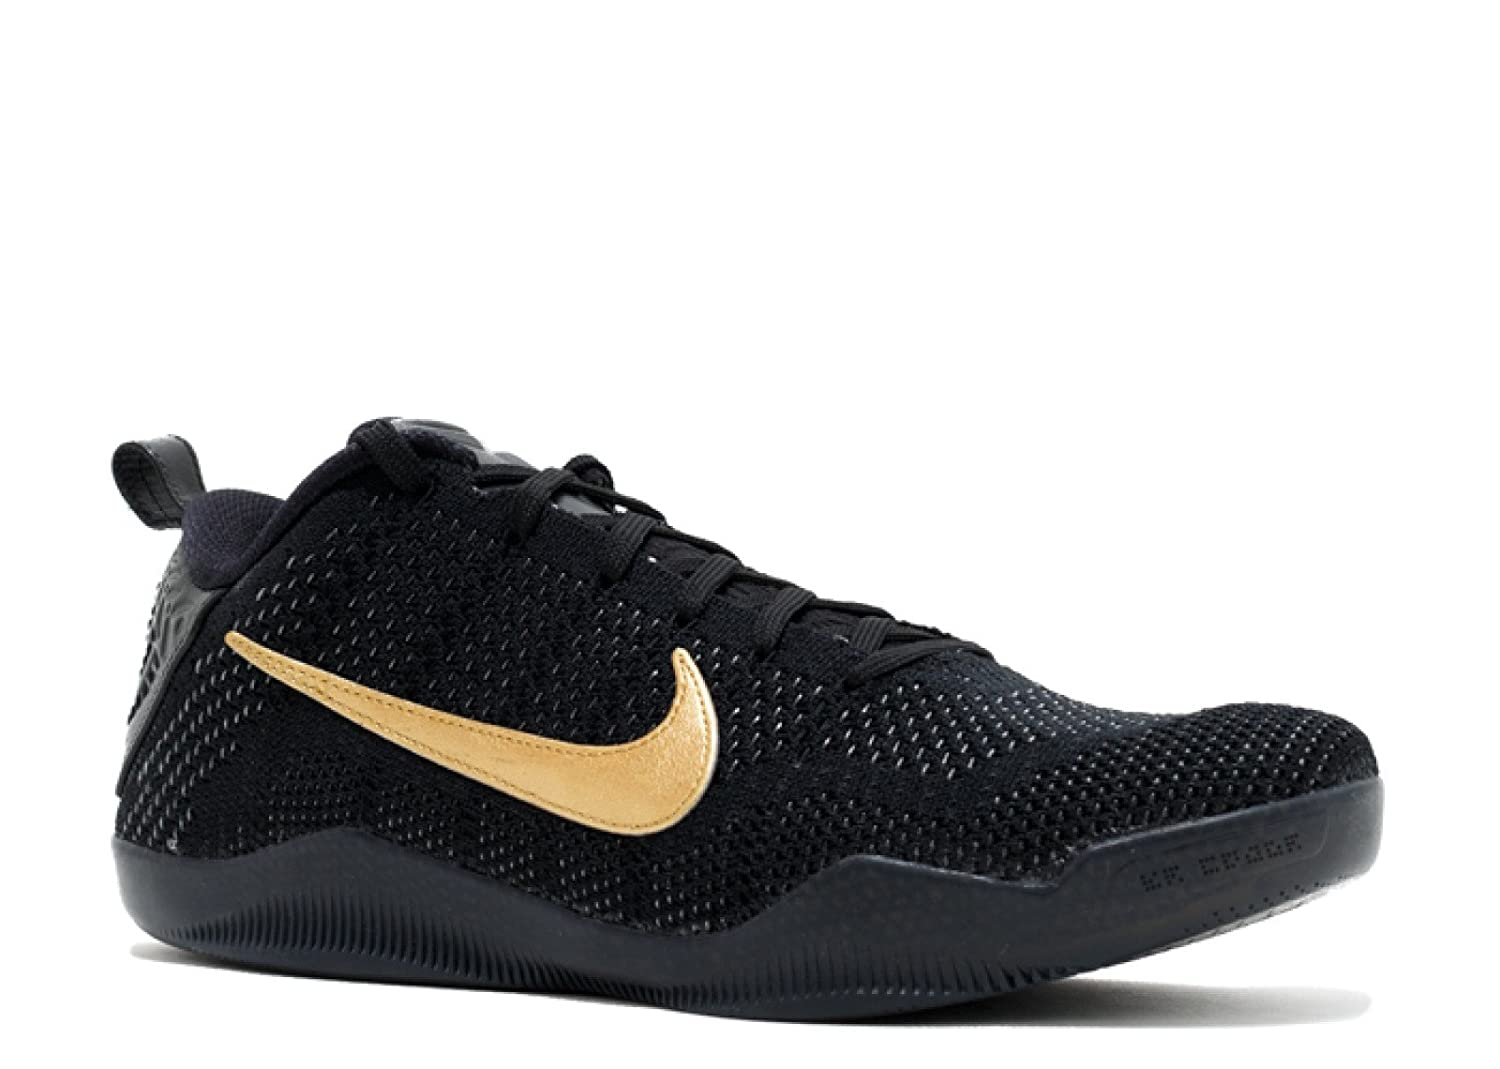 timeless design ff18c b2d9c Amazon.com   Nike Kobe 11 FTB Black Black-Metallic Gold 869459-001